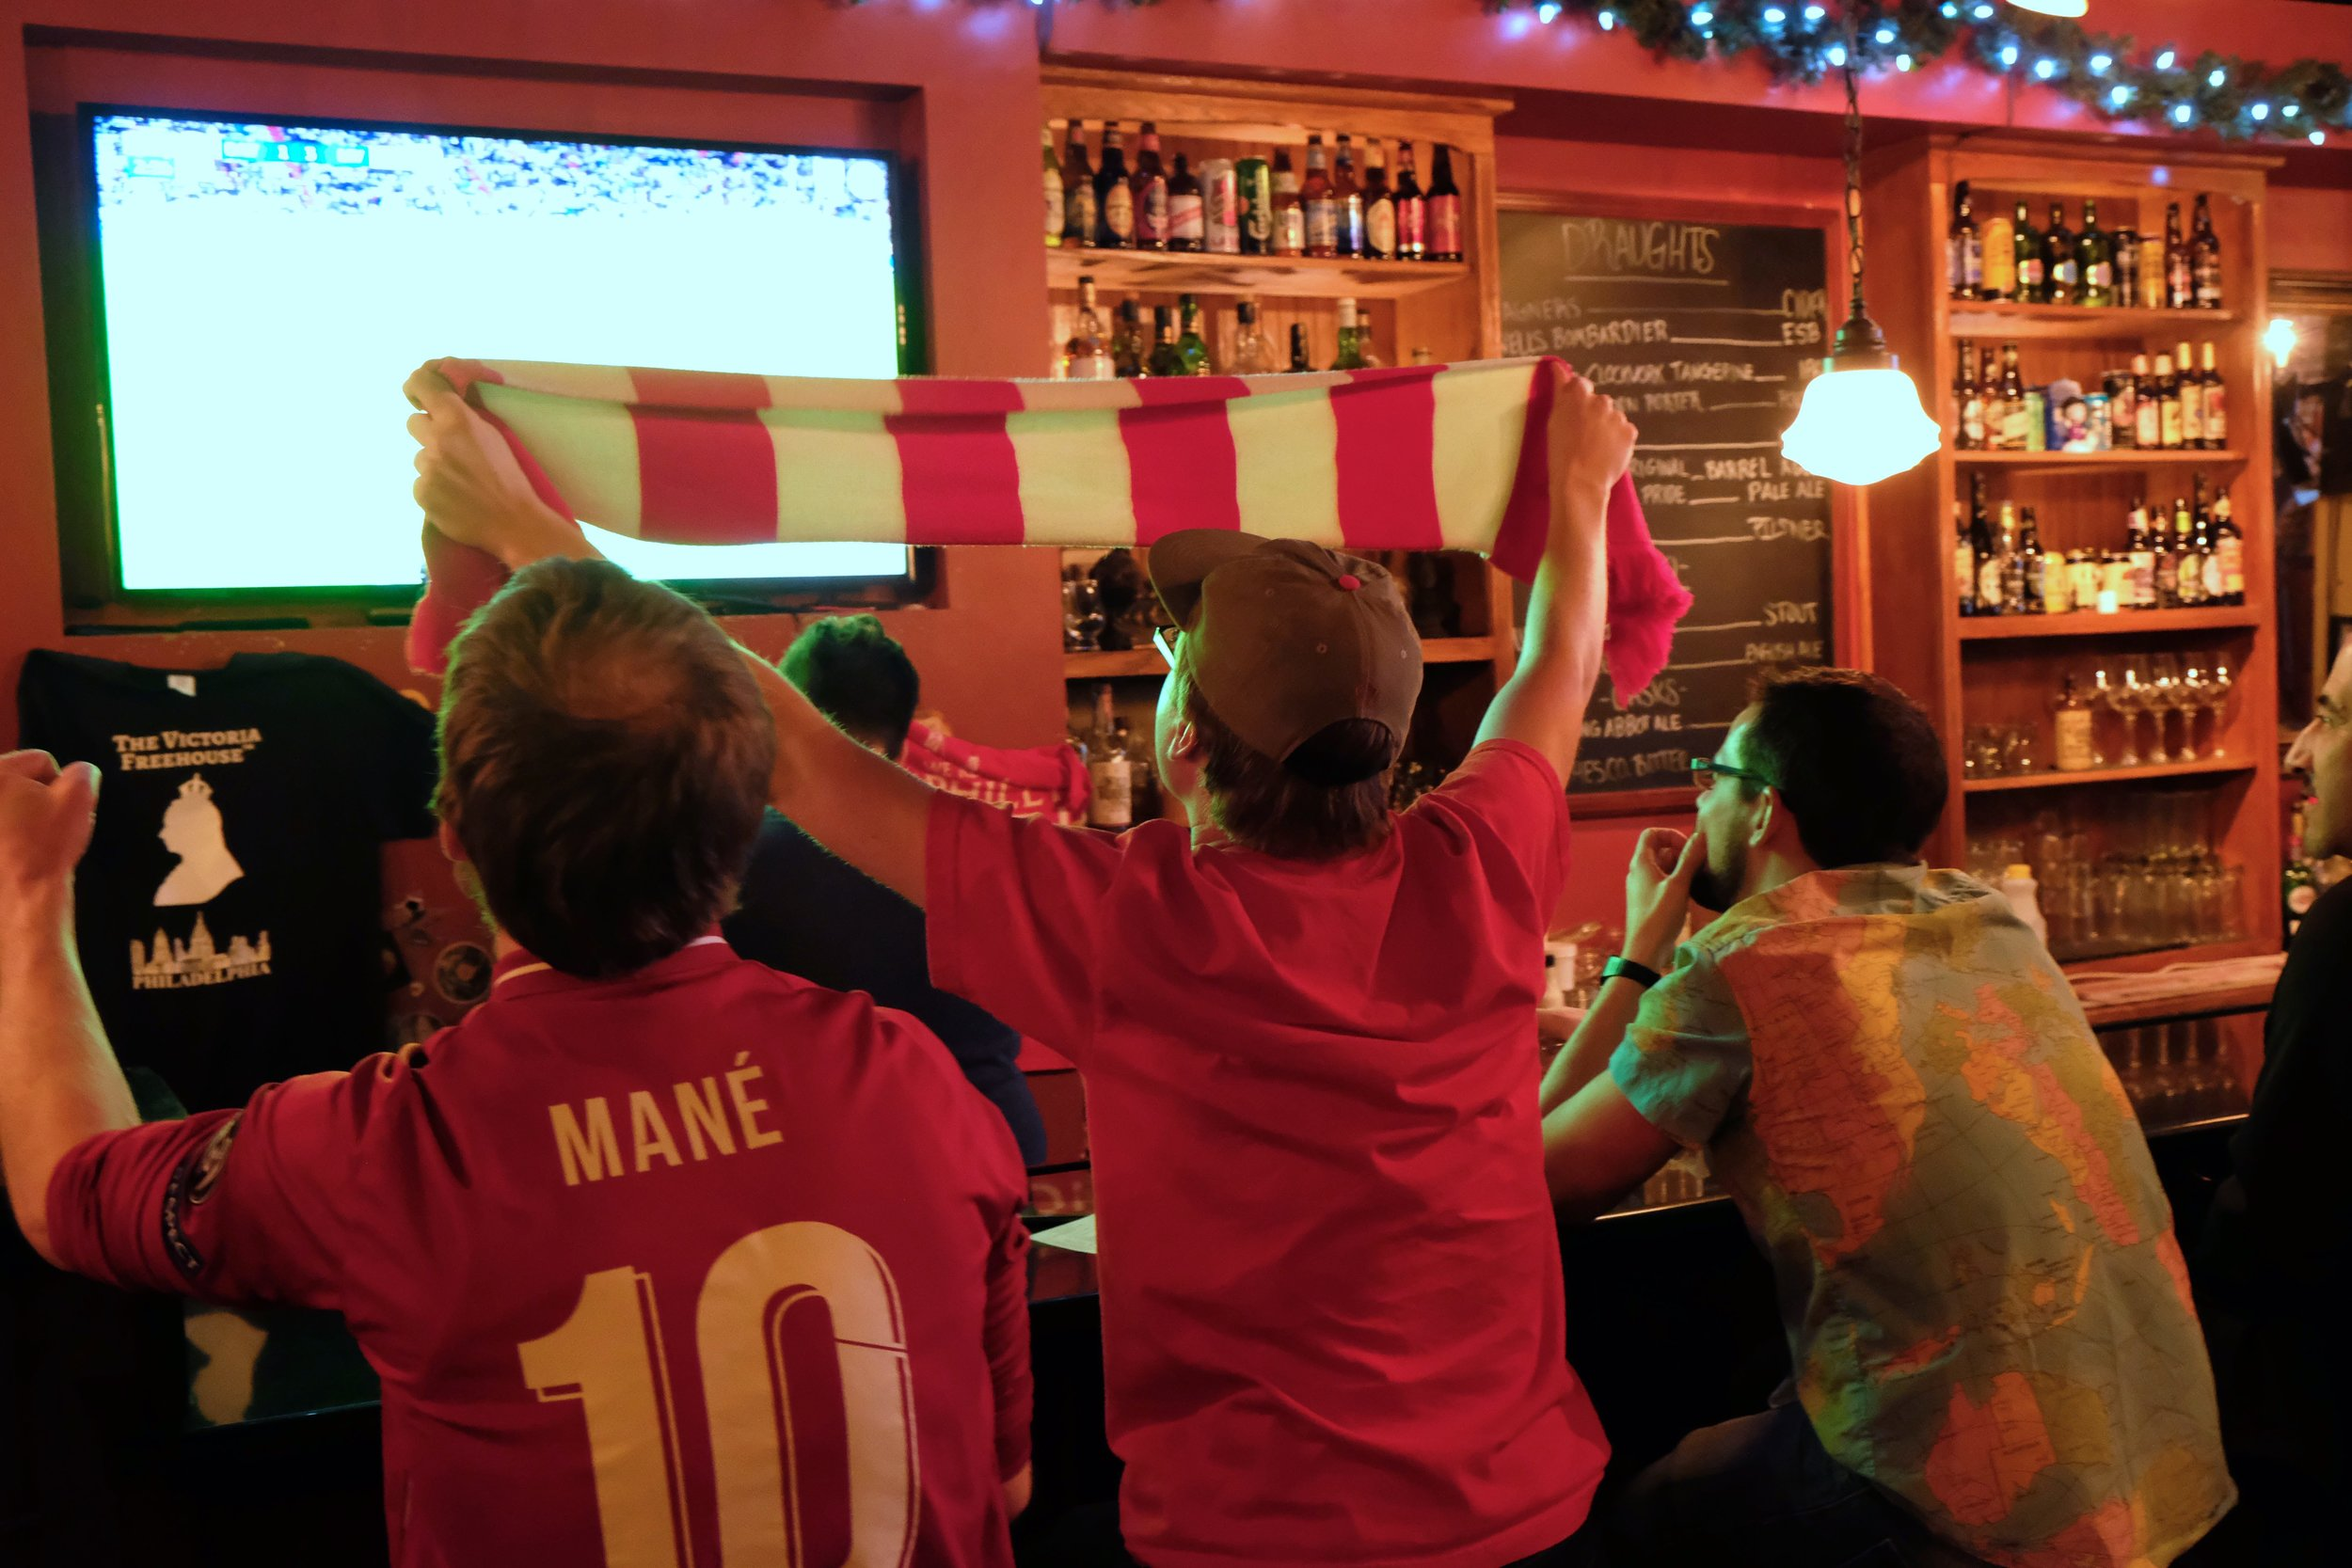 janette-beckman-lfc-liverpool-fans-philly-victorias-freehouse.jpg